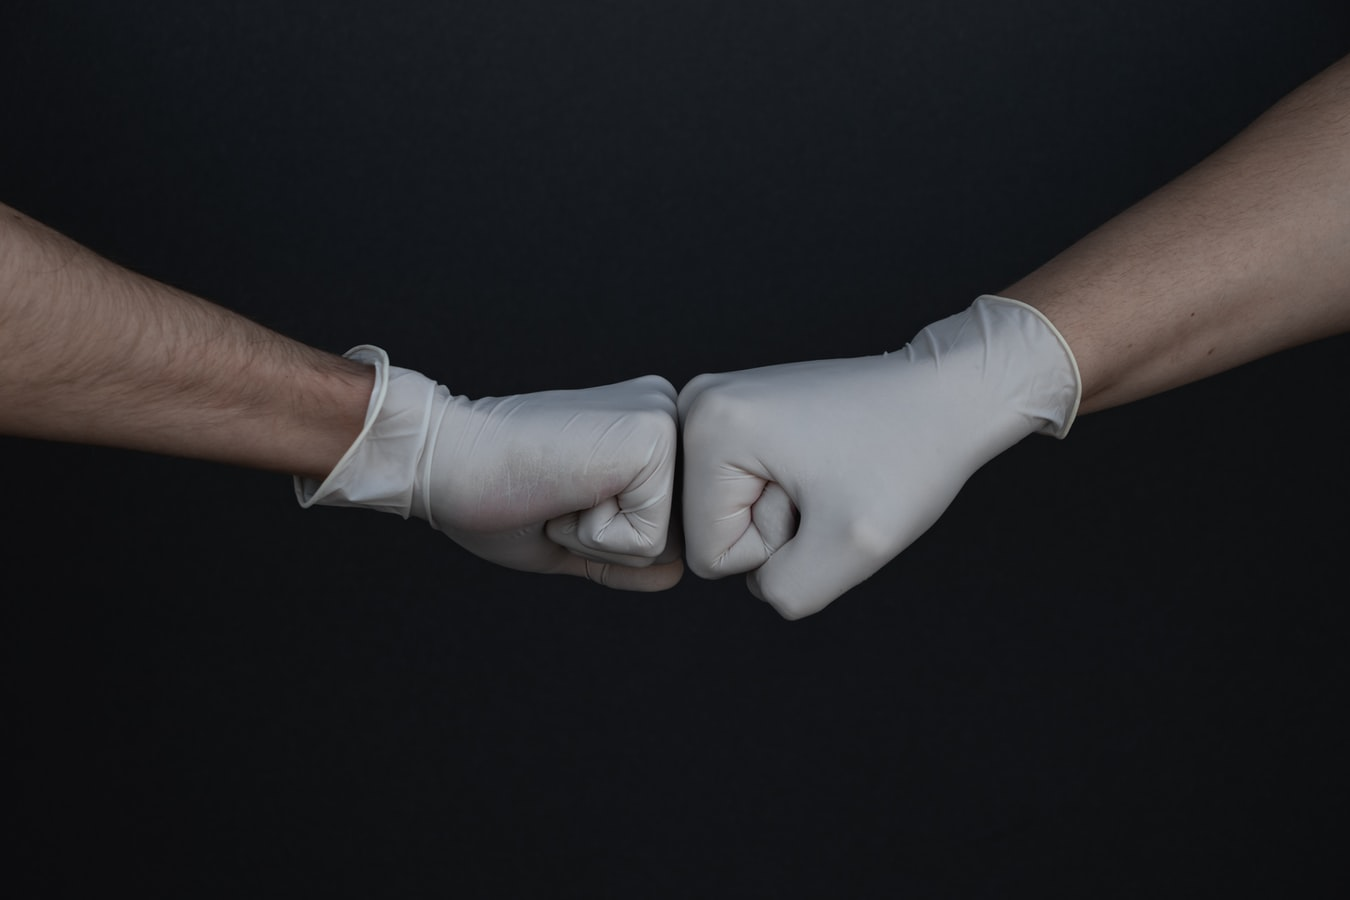 Two fists bumping while wearing medical gloves